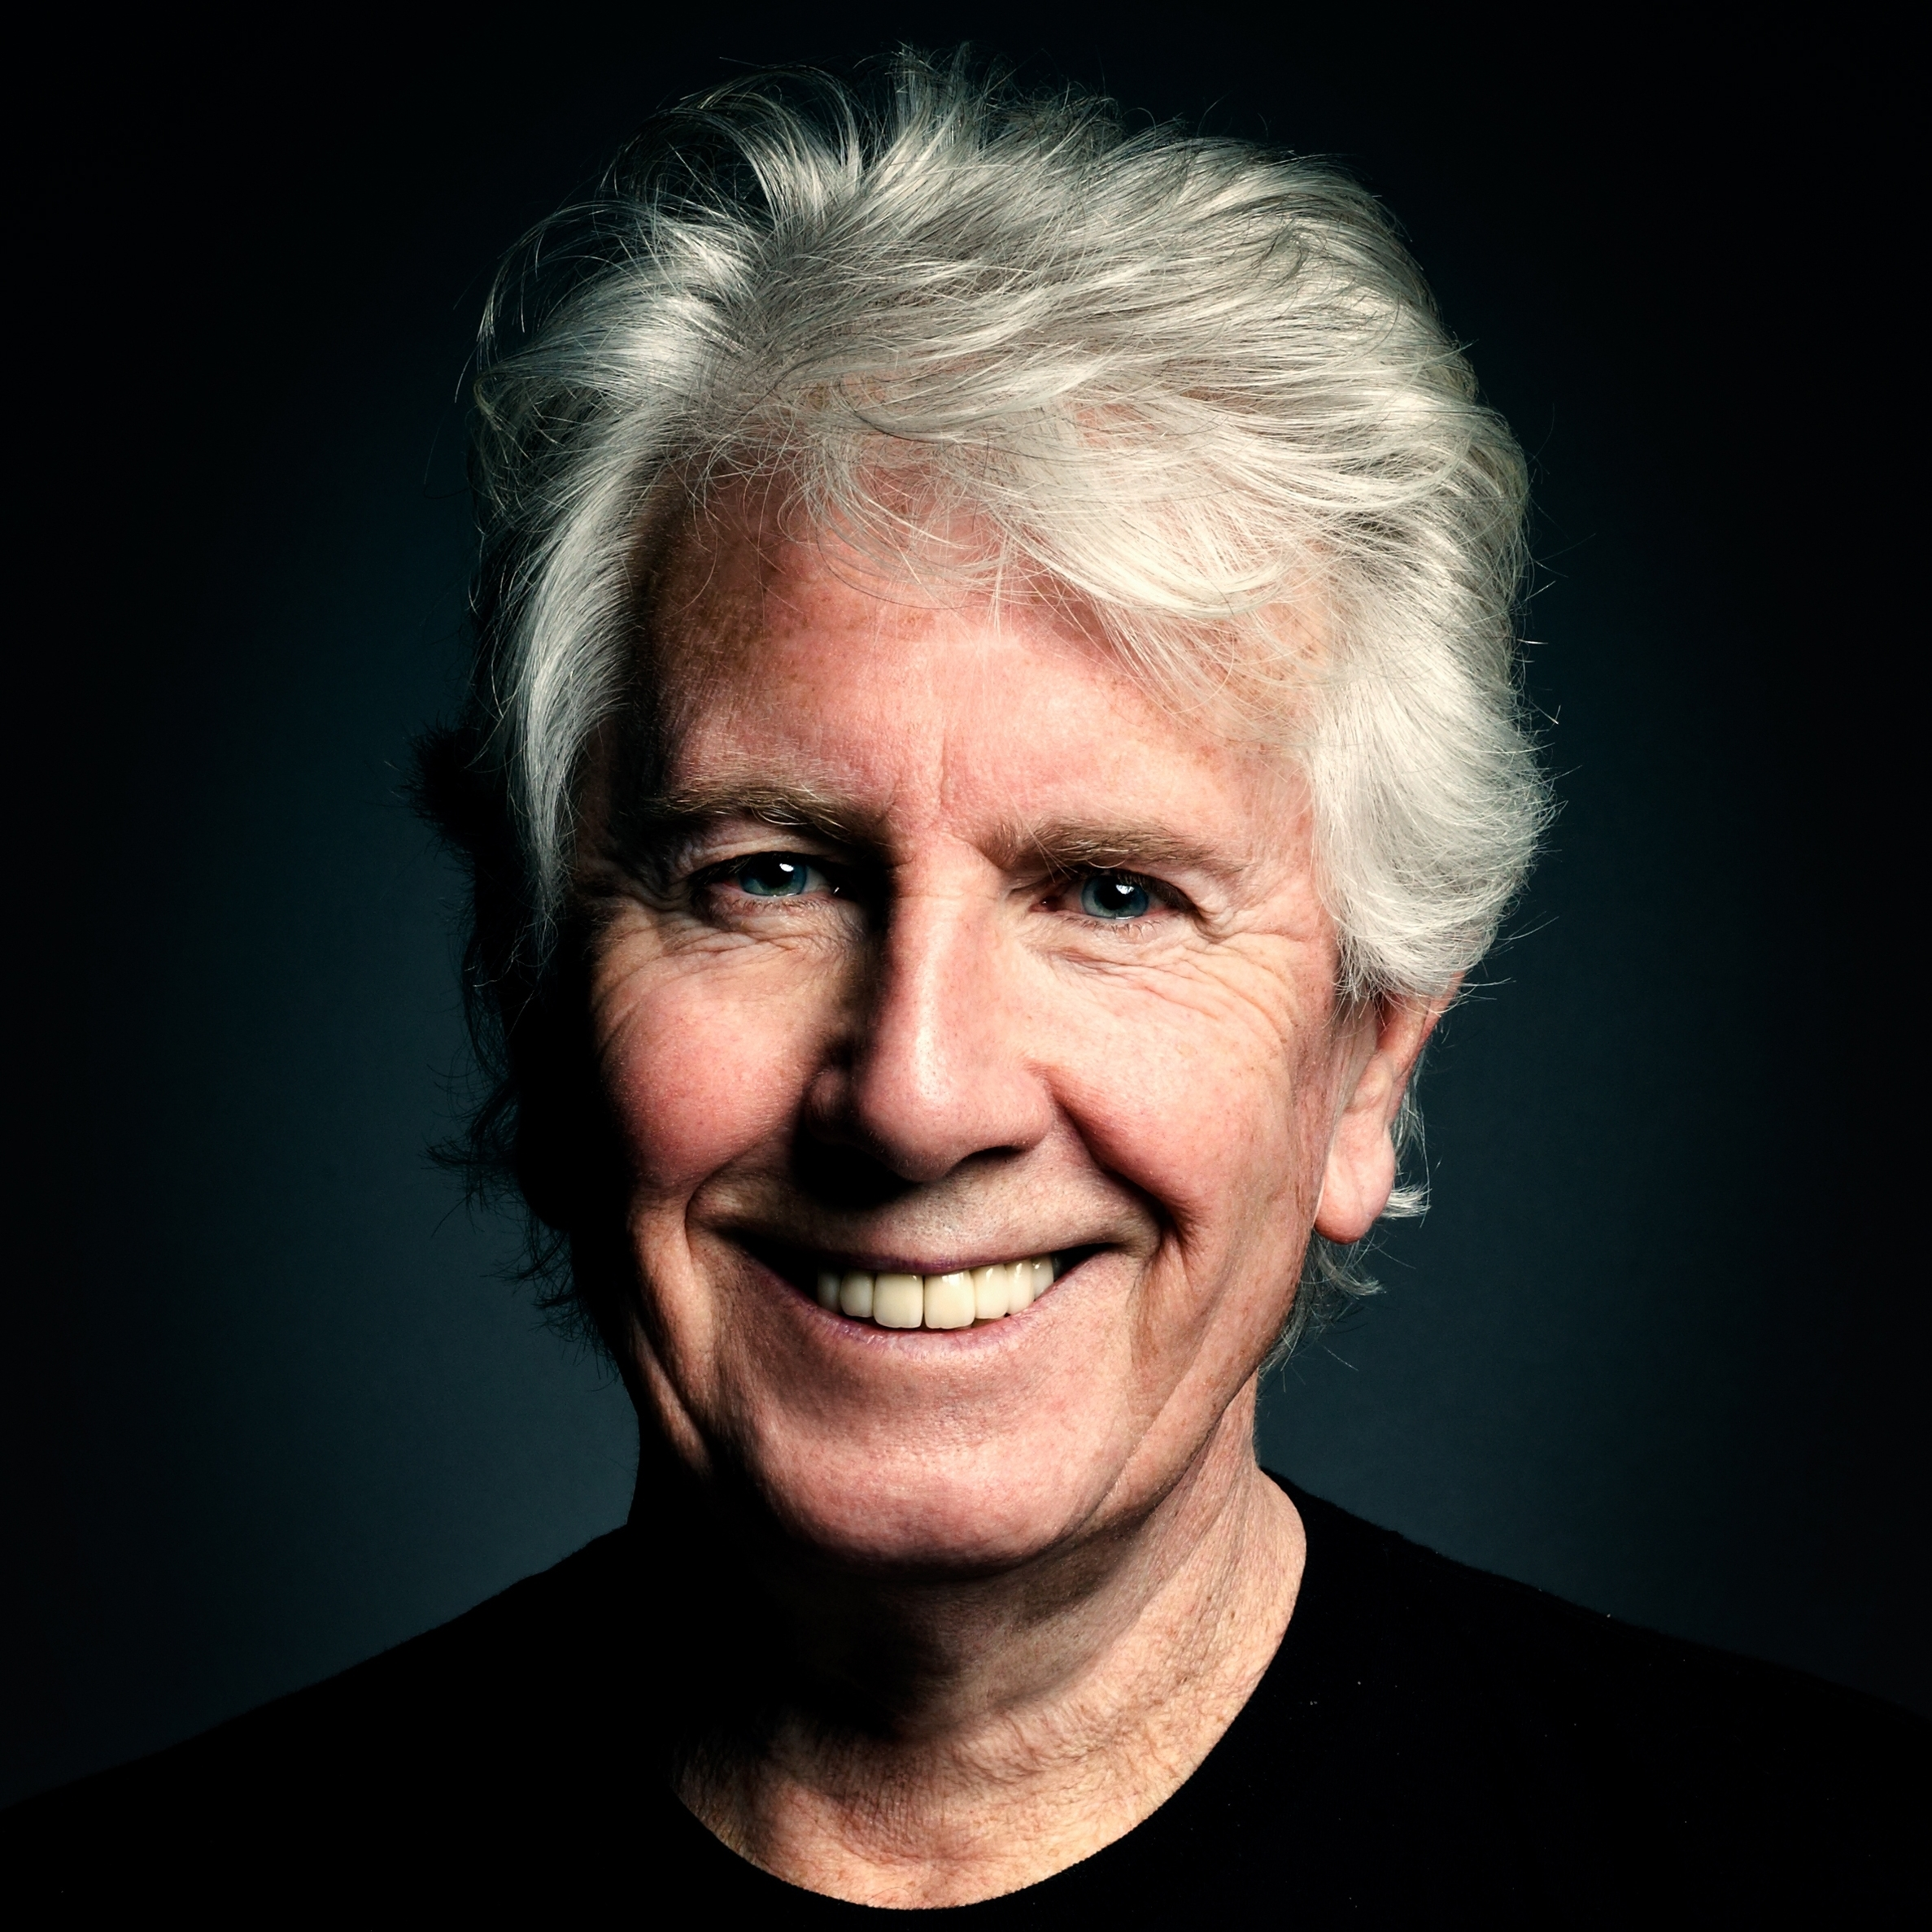 Graham Nash has been inducted into the Rock and Roll Hall of Fame twice -- once in 1997 as a member of Crosby, Stills & Nash, and once in 2010 as a member of The Hollies.